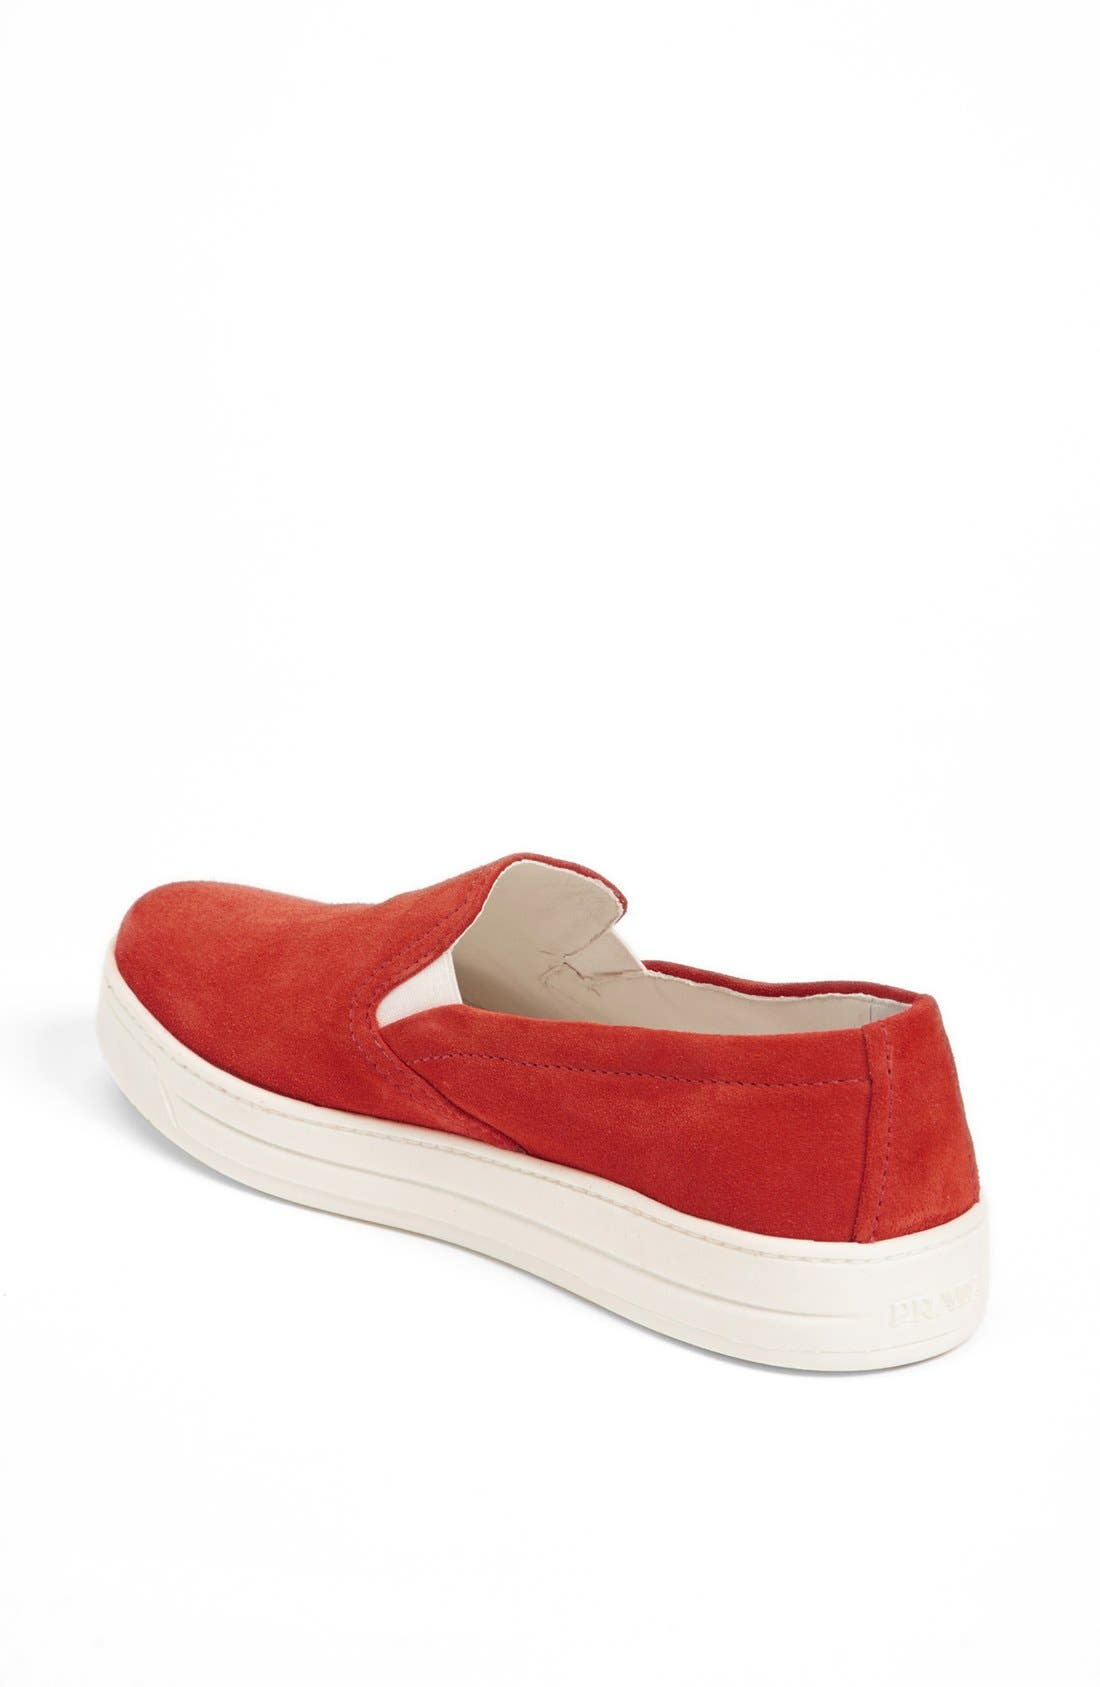 Slip-On Sneaker,                             Alternate thumbnail 61, color,